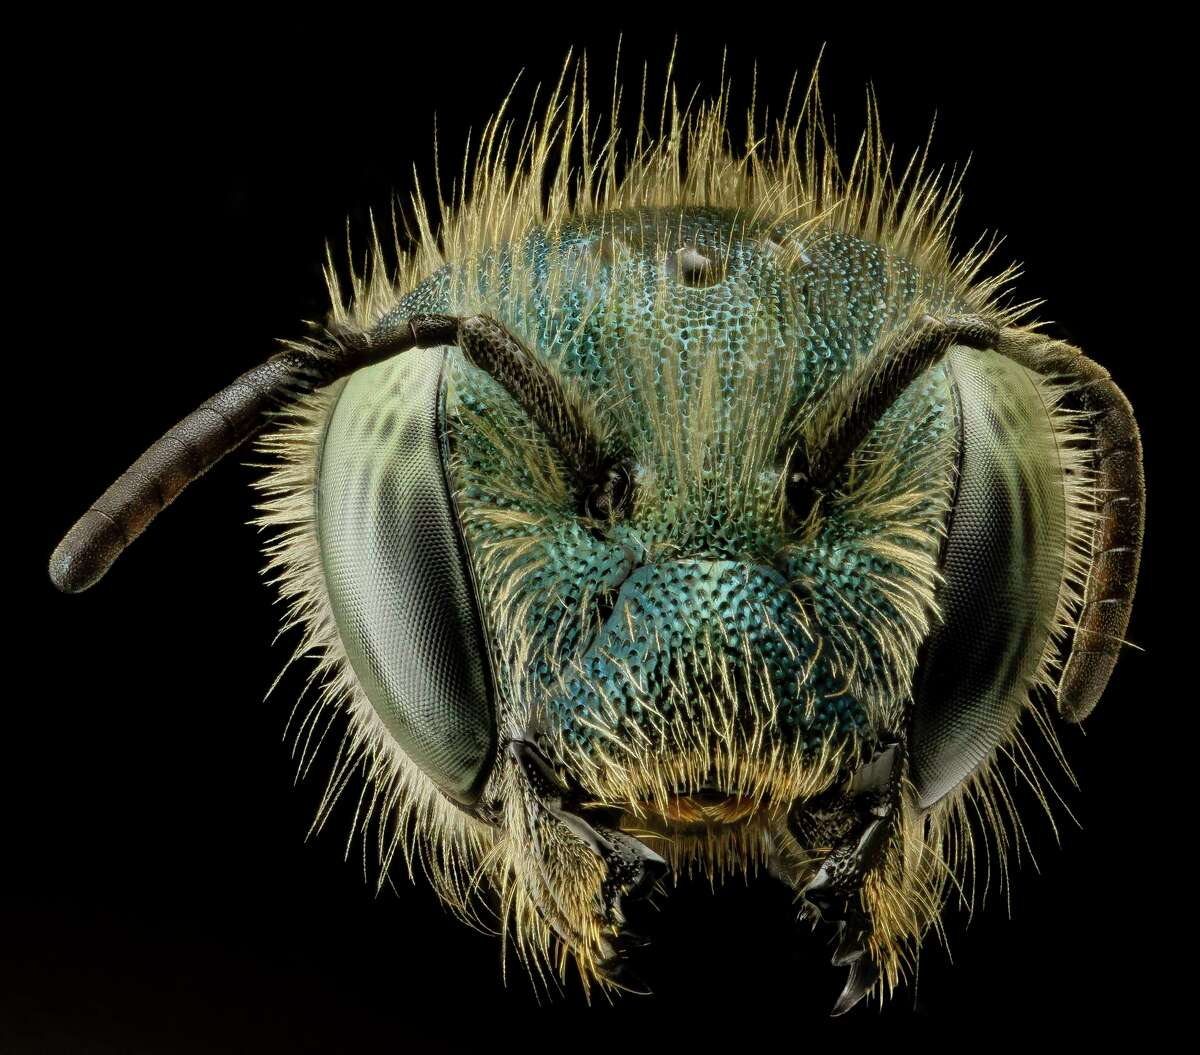 Furry but nonaggressive, the Osmia atriventris is one of our native mason bees. Scientists estimate an acre of land can support 25,000 wild bees per year.